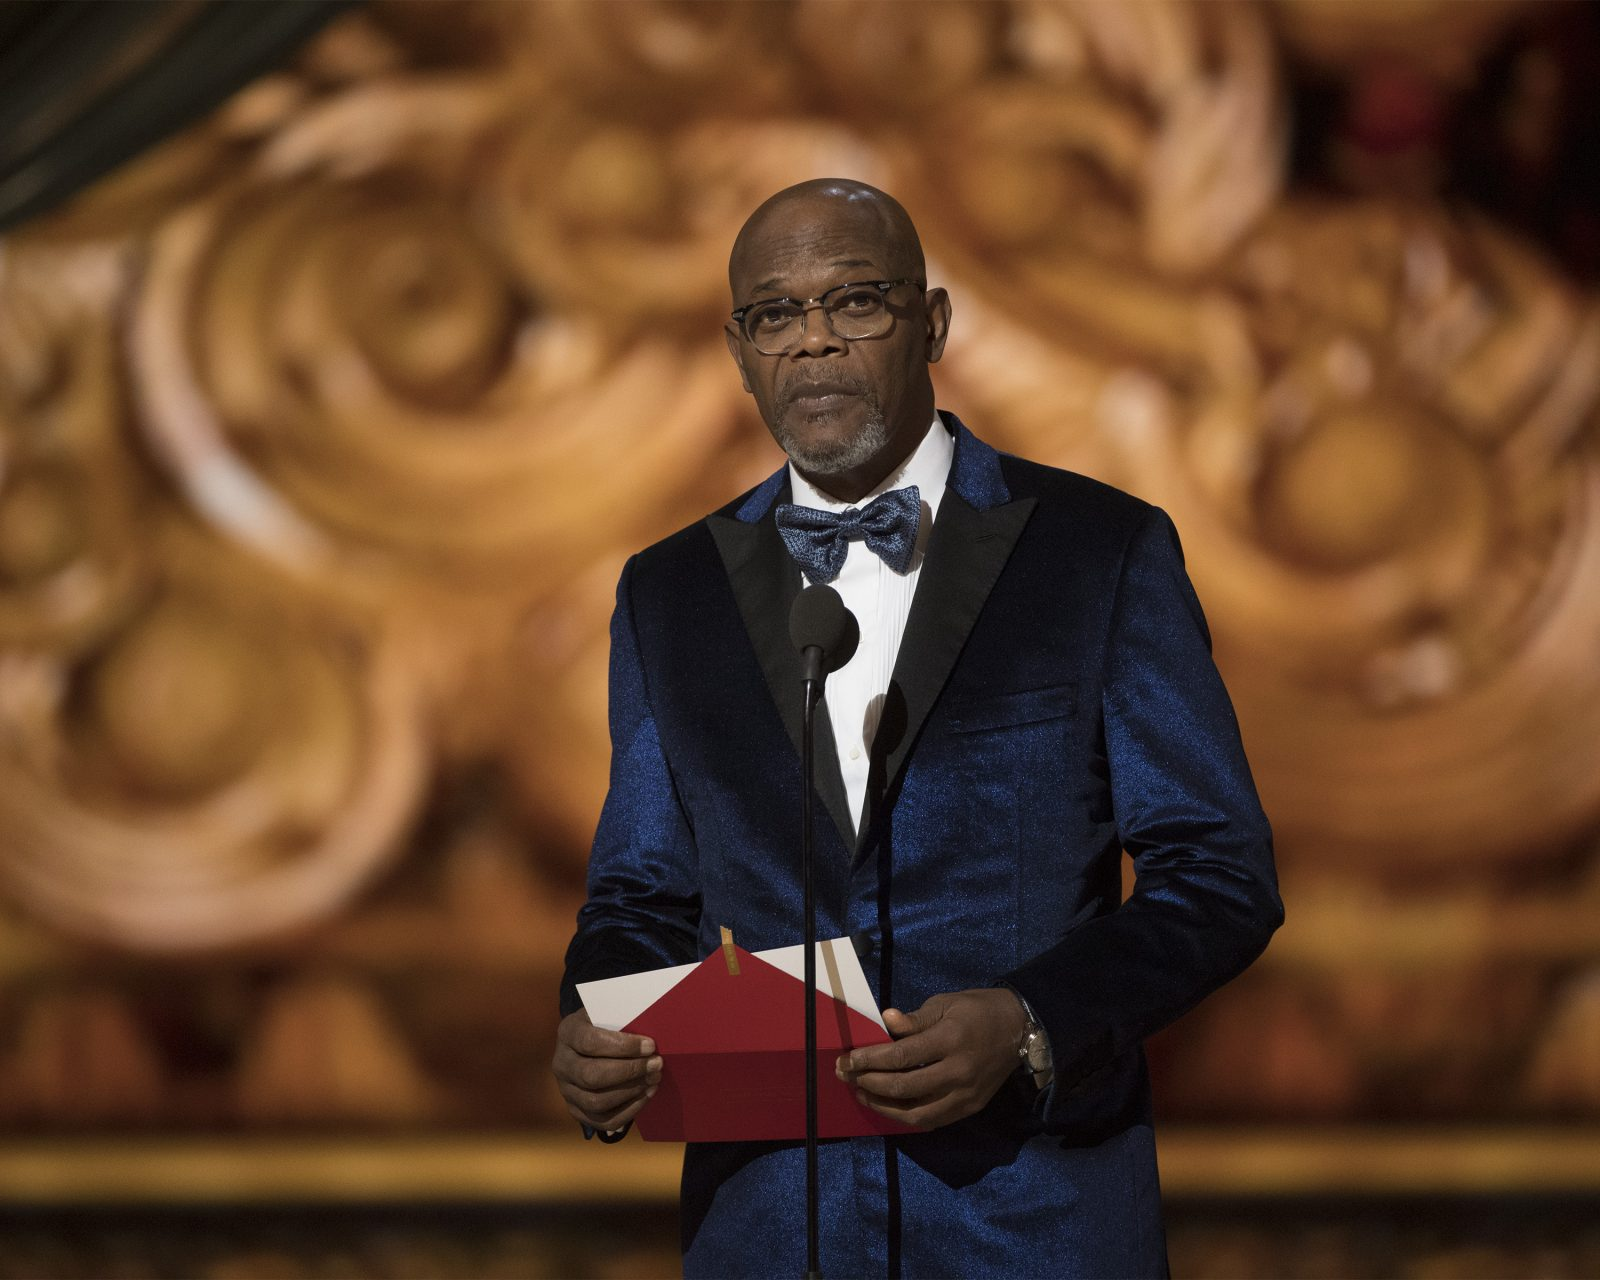 Samuel L. Jackson at the 89th Oscars. Photo Credit: (ABC/Eddy Chen)